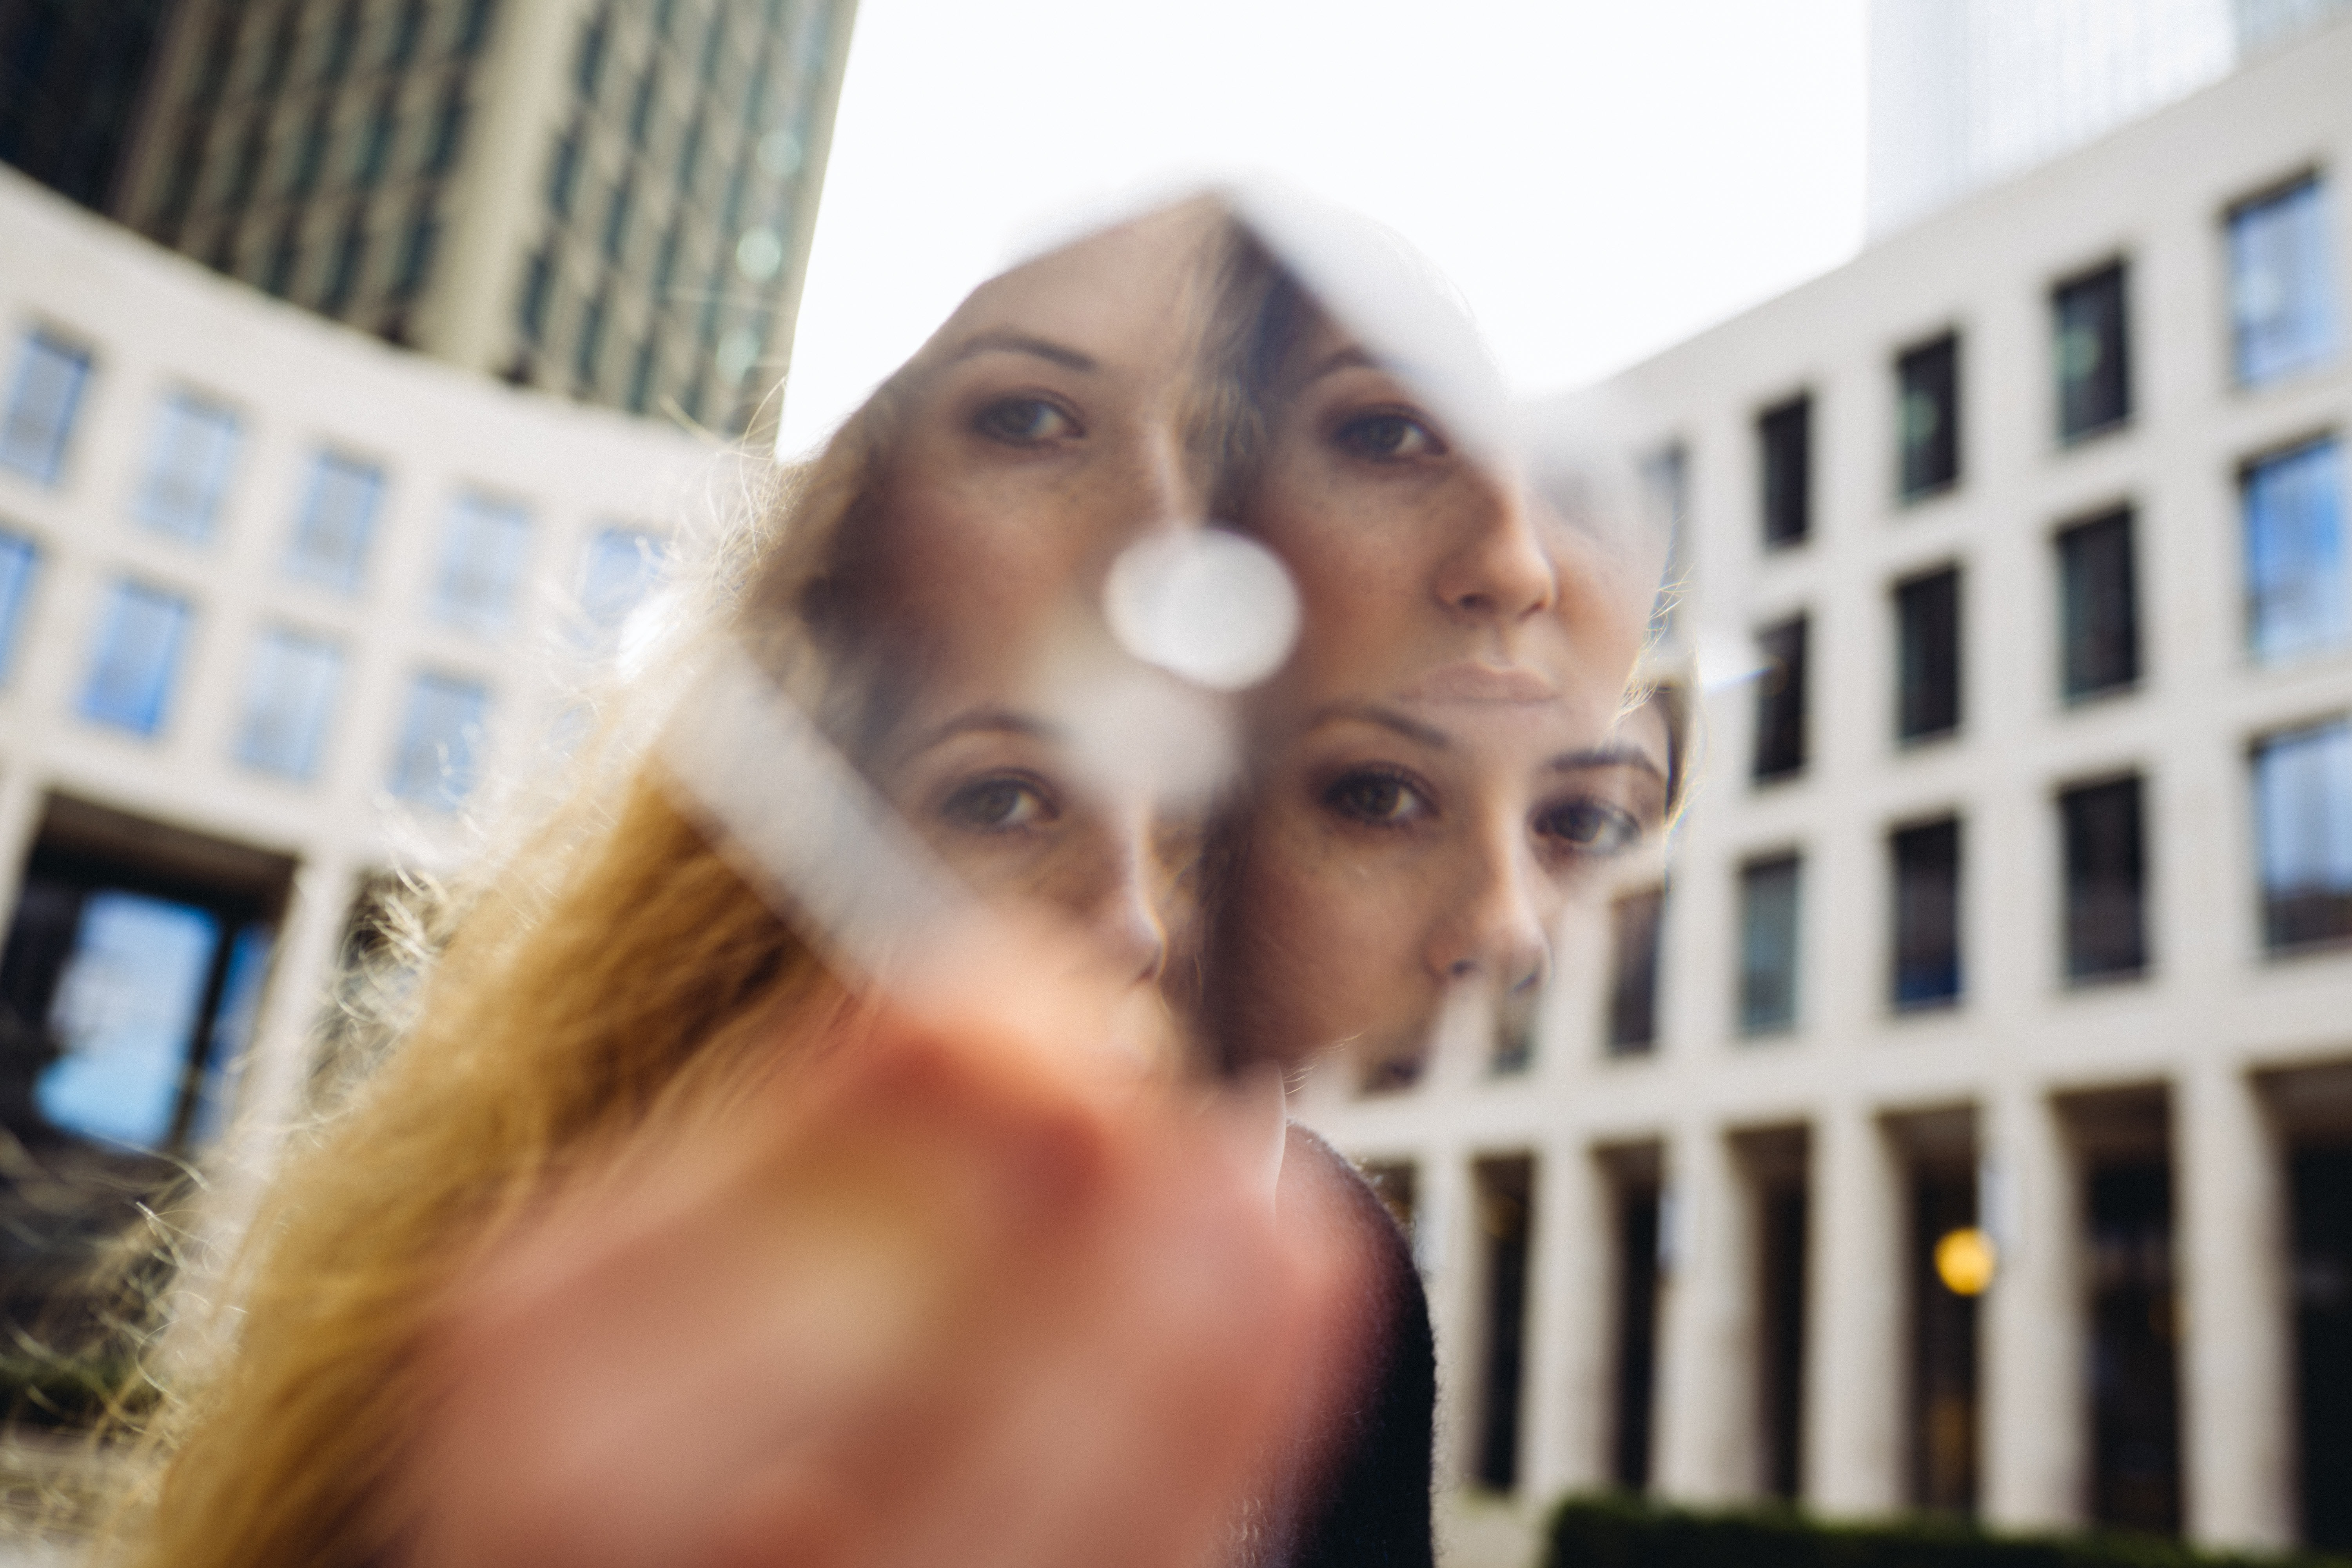 woman face reflection on mirror